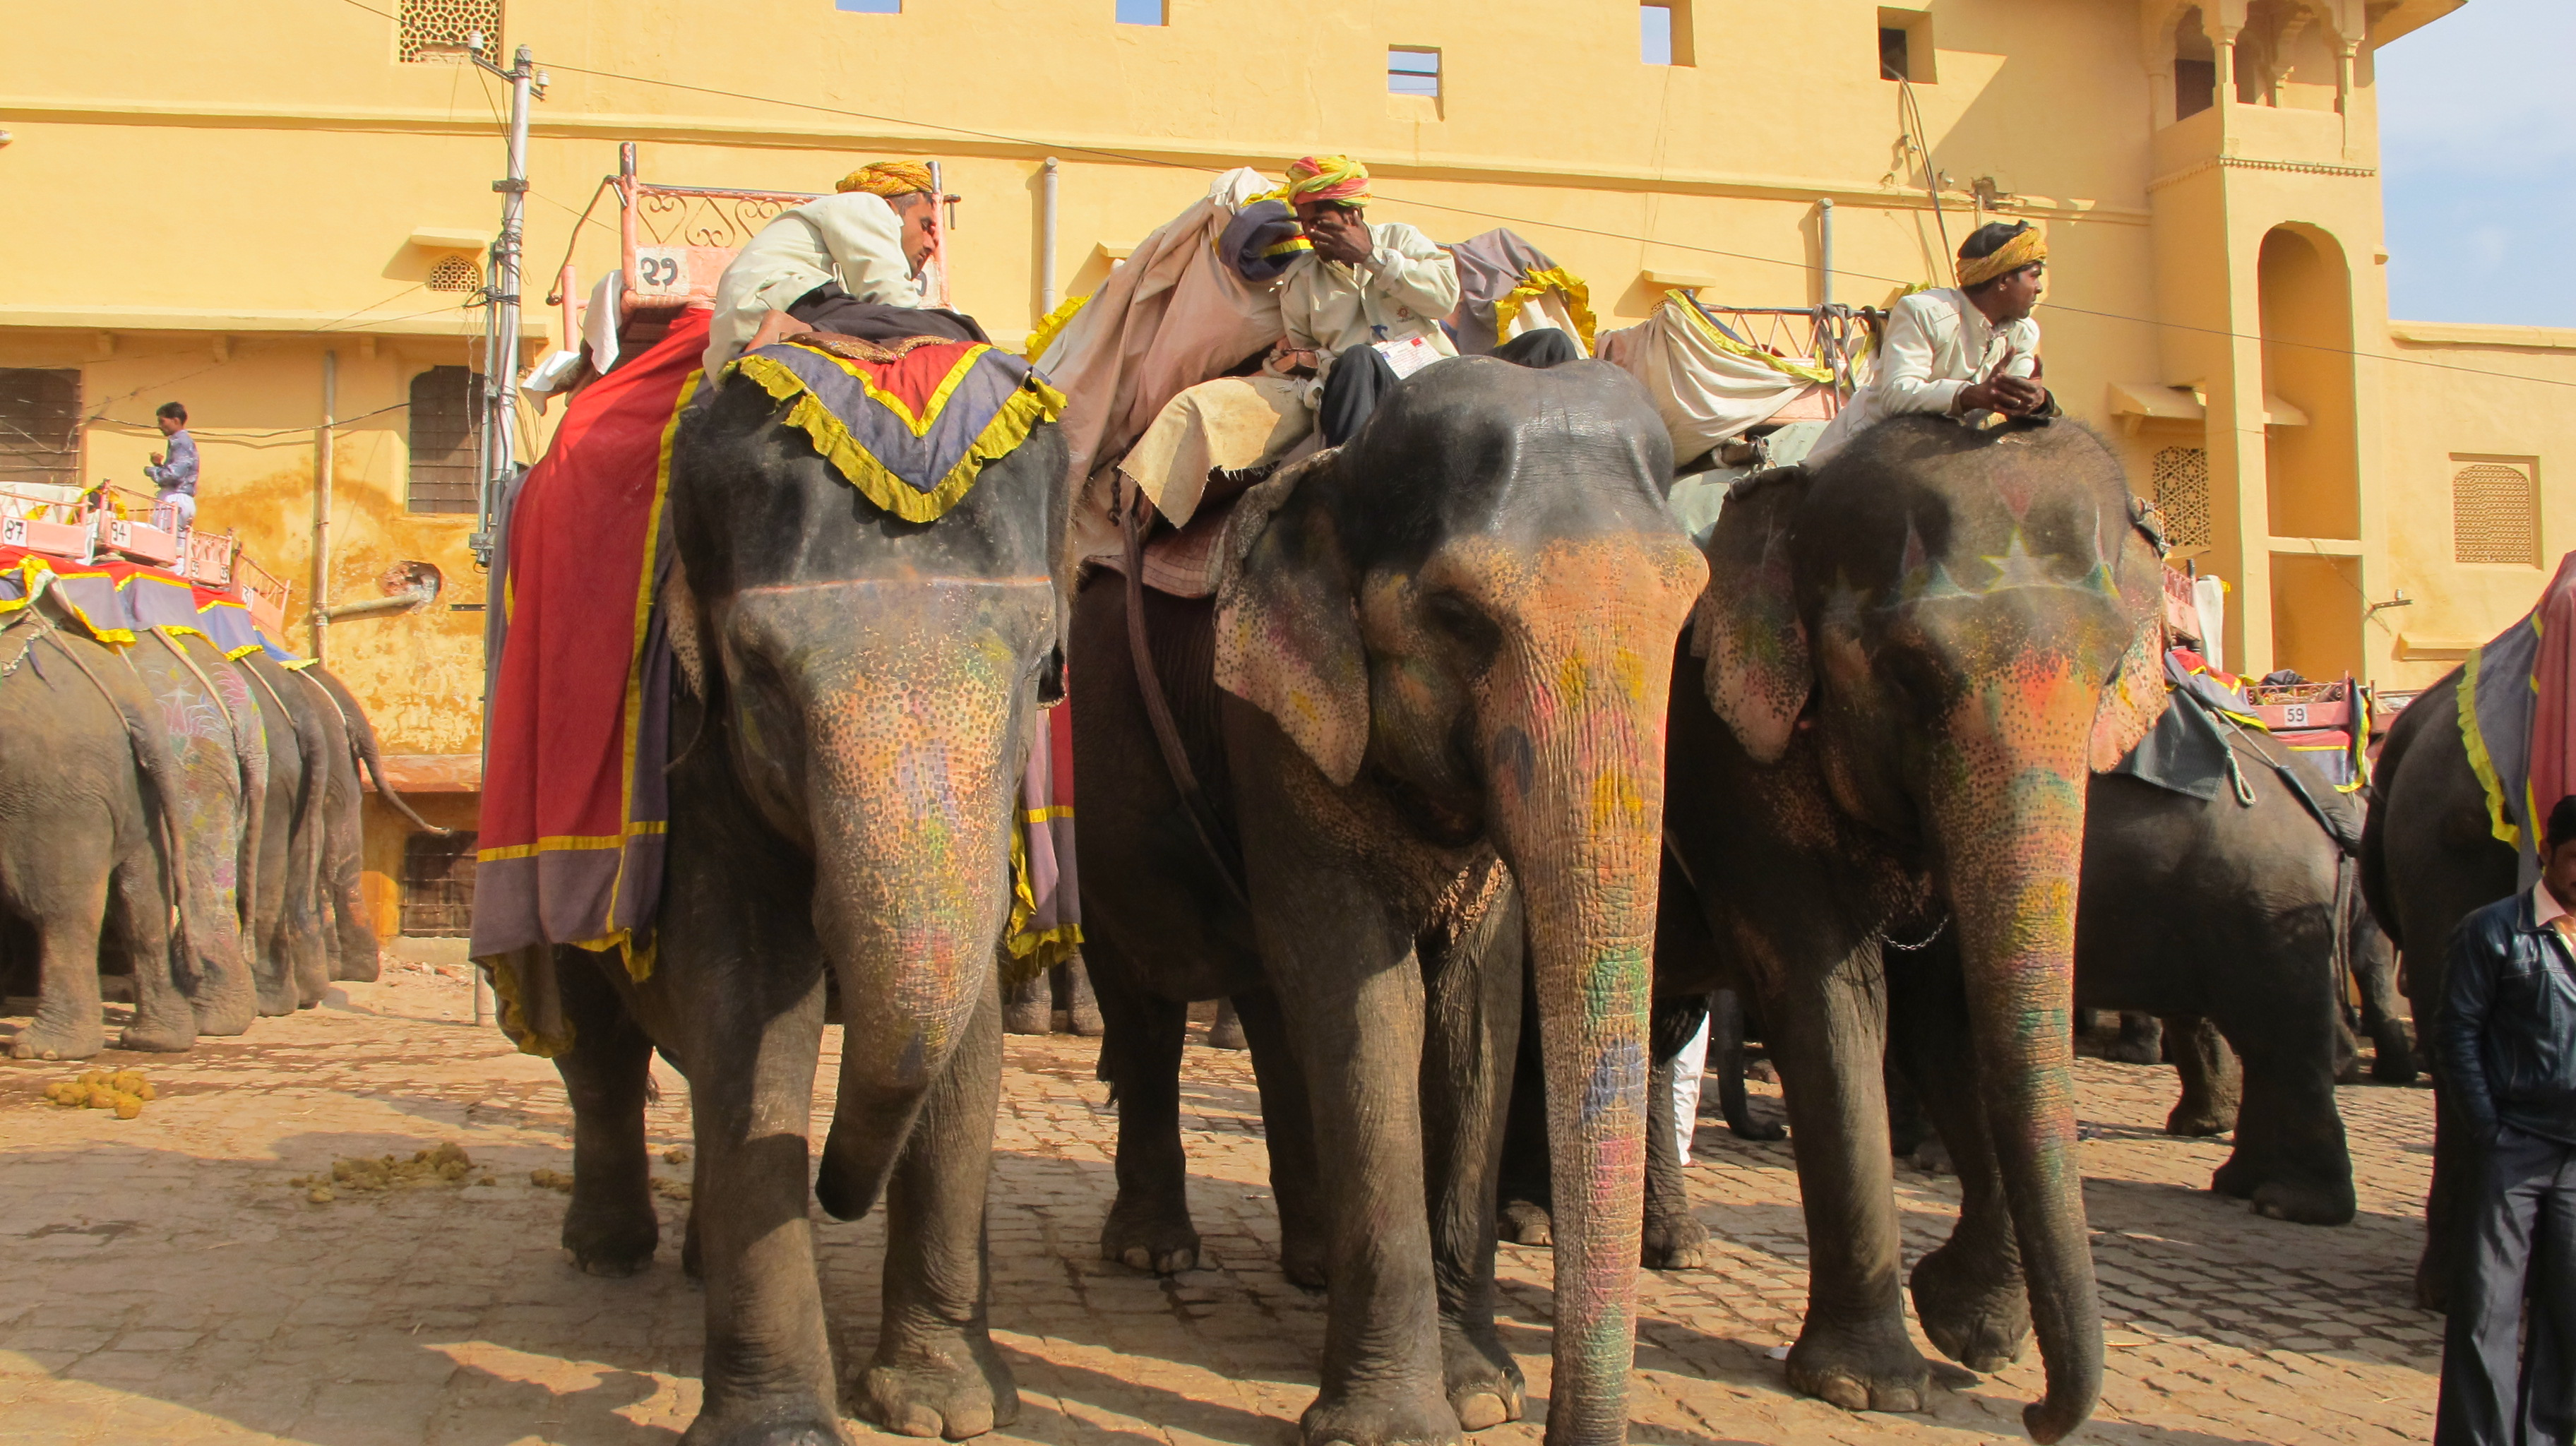 Elephants decorated for rides to Amber Fort